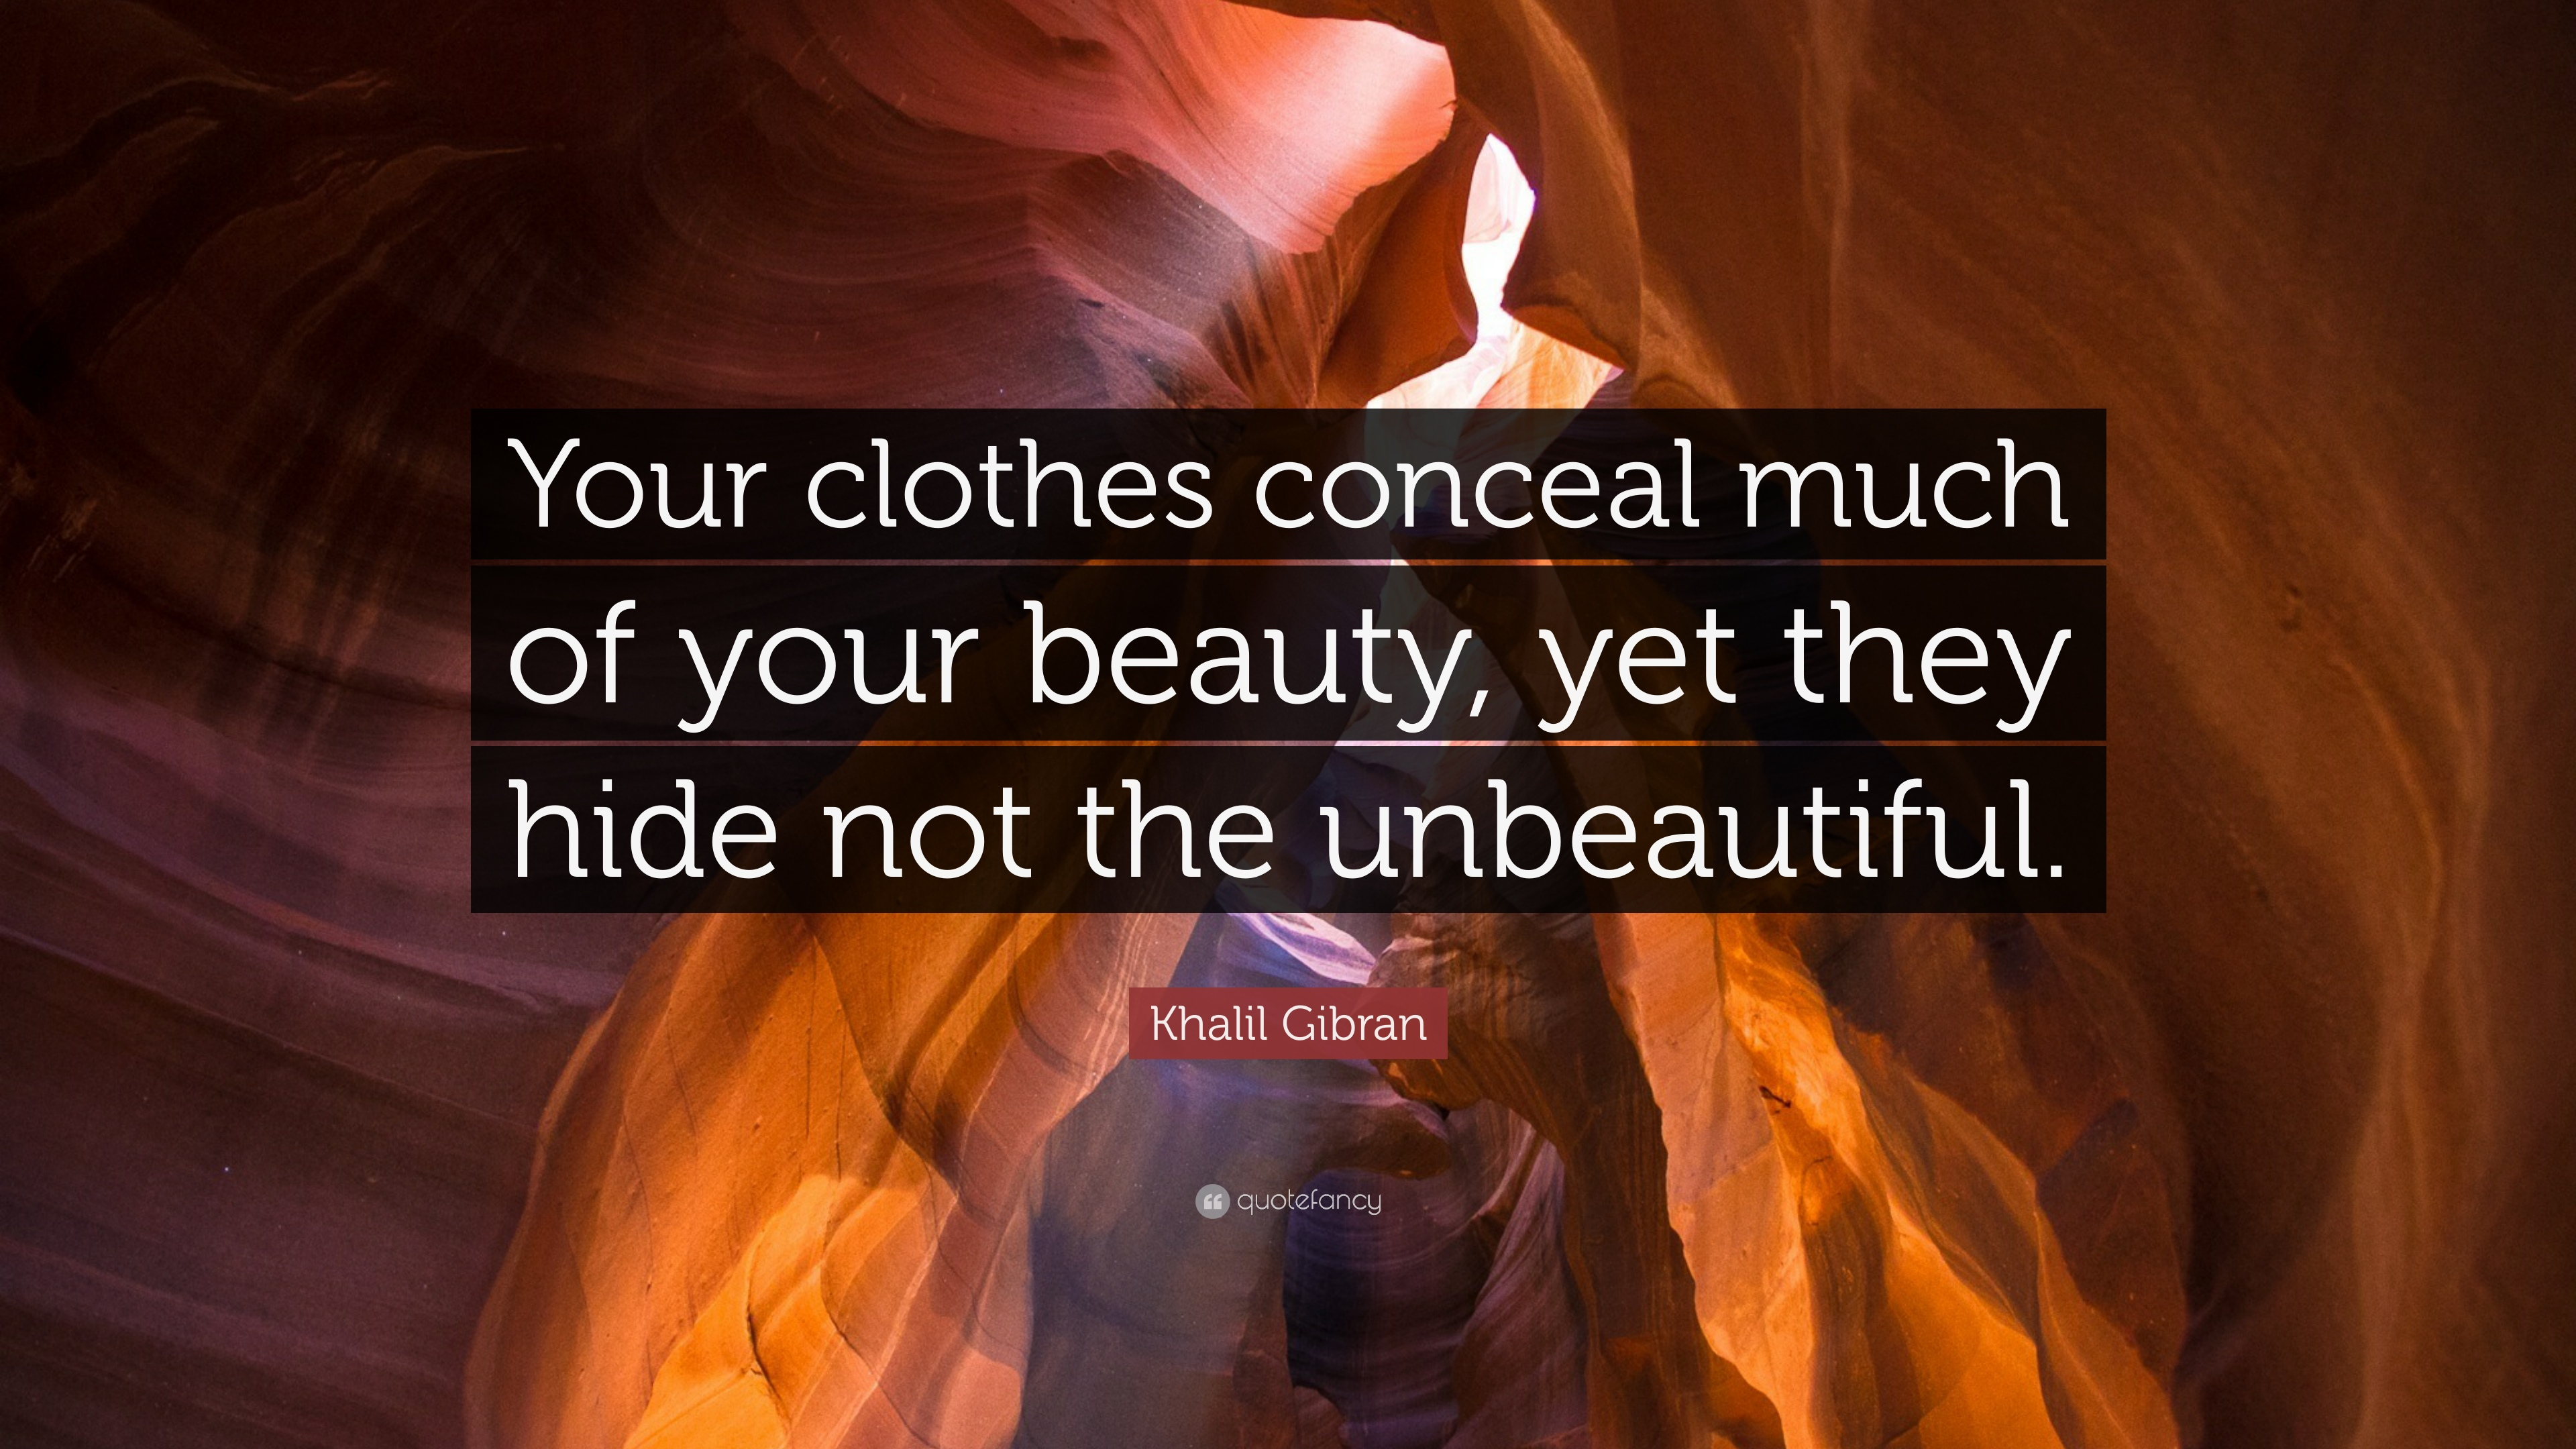 Khalil Gibran Quote Your Clothes Conceal Much Of Your Beauty Yet